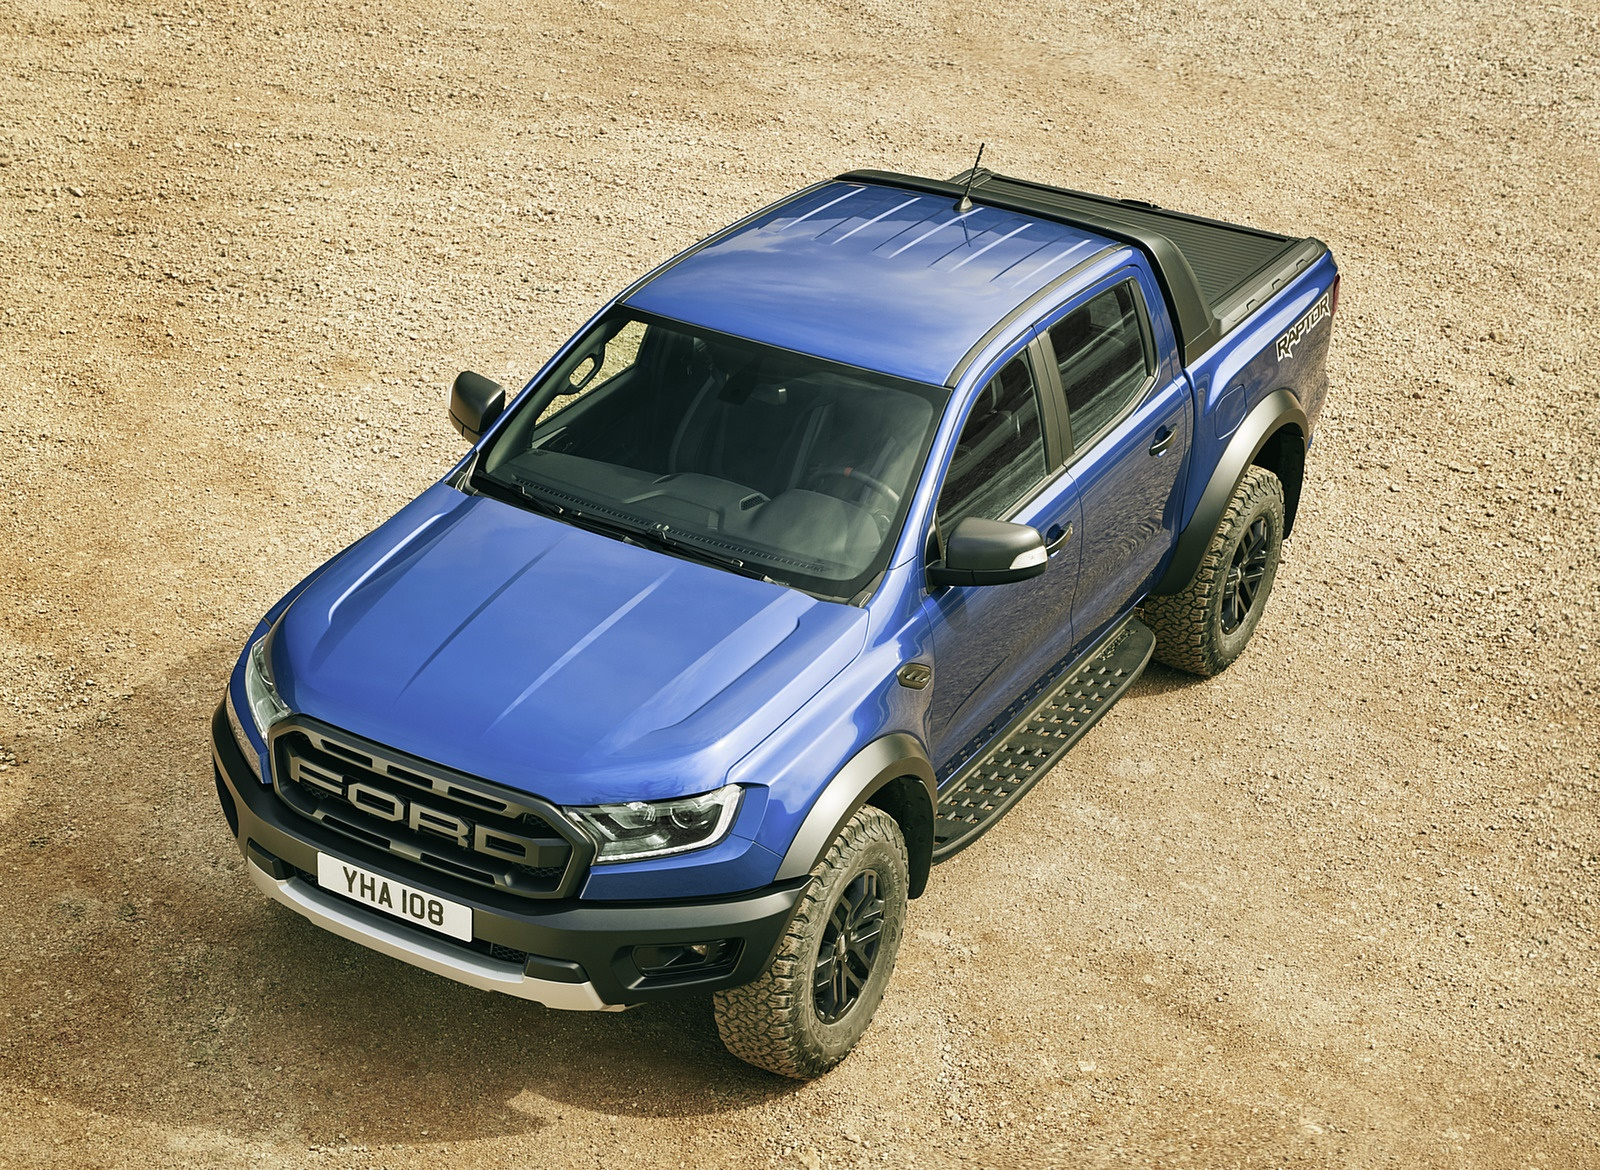 62dac9d525 2019 Ford Ranger Raptor Wallpapers (37+ HD Images) - NewCarCars